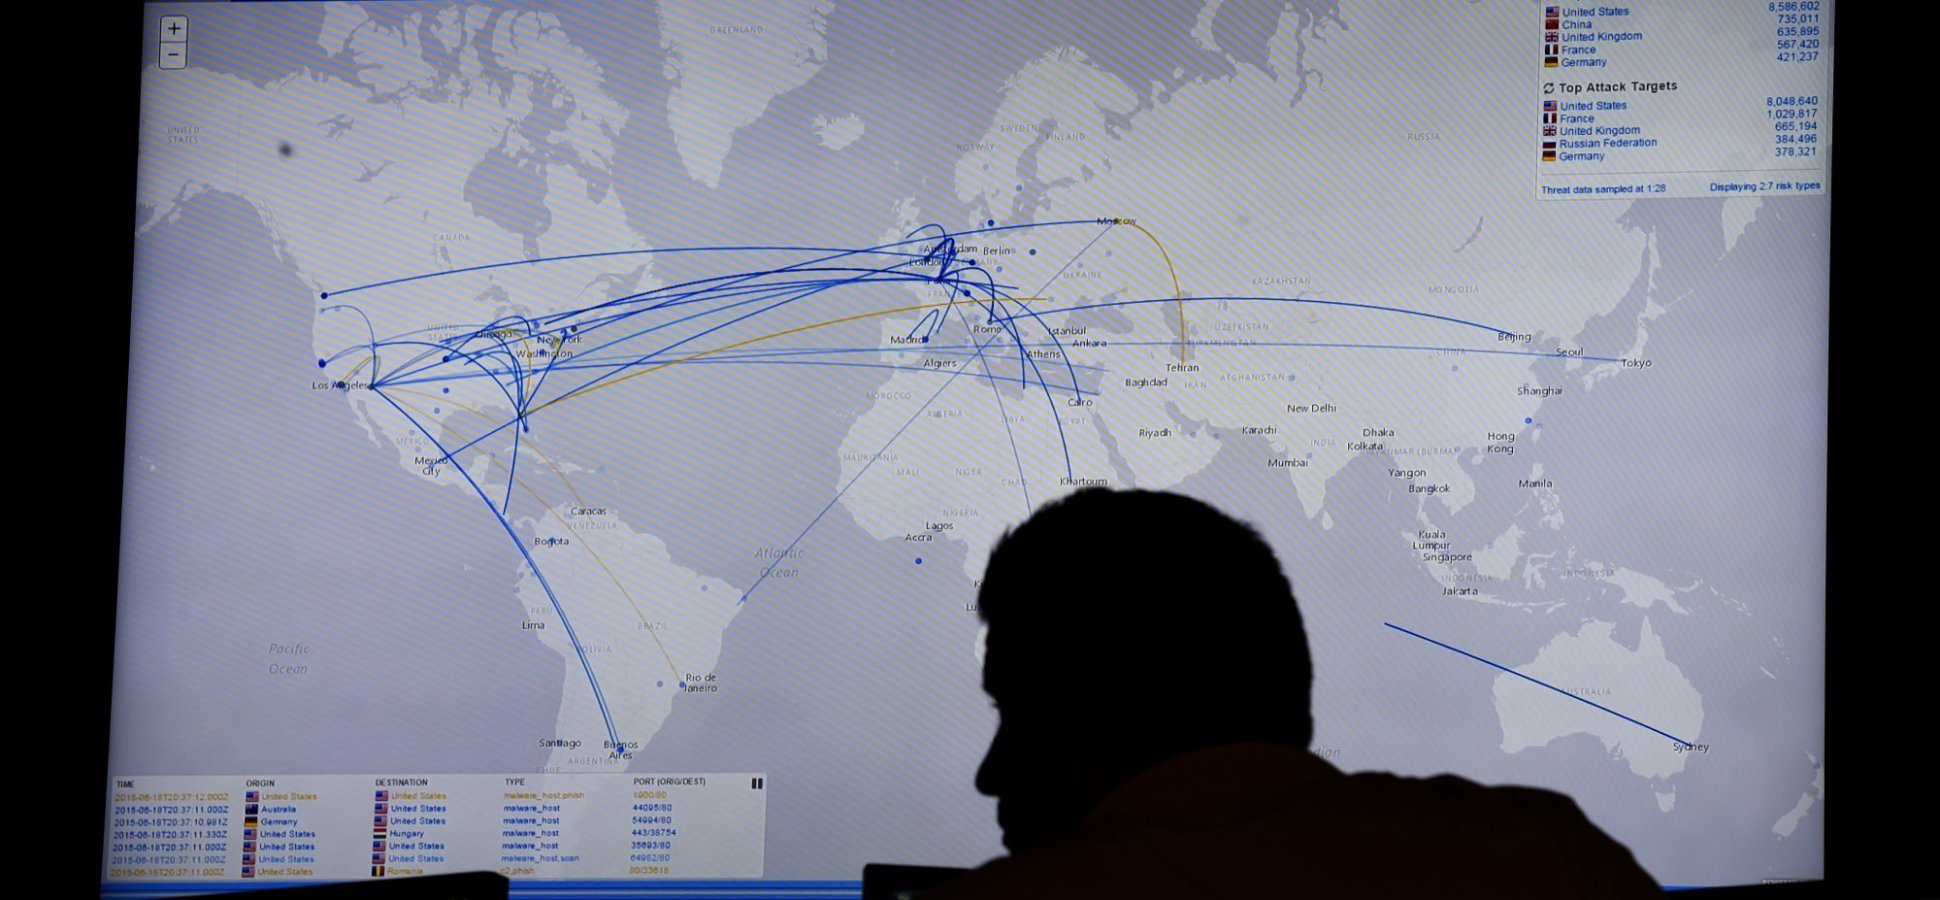 Malware Infects 500,000 Routers and Network Devices in 54 Countries, What You Should Do